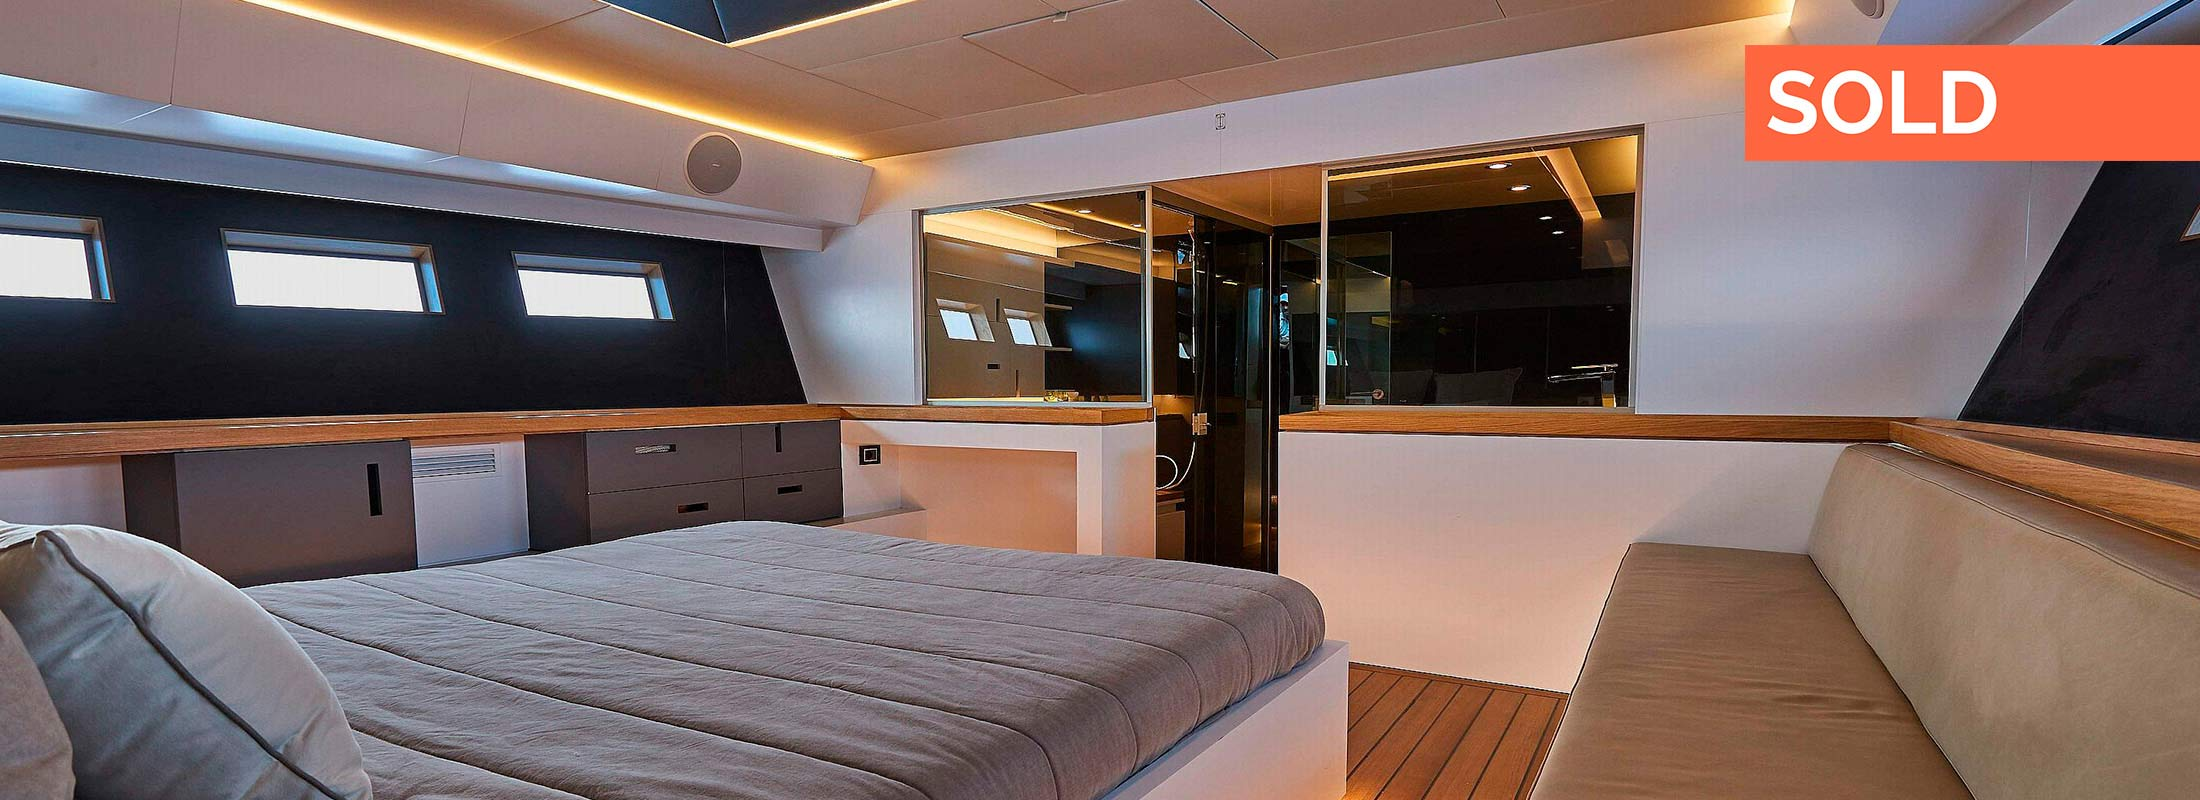 Matariki-Motor-Yacht-for-sale-slide-03.jpg